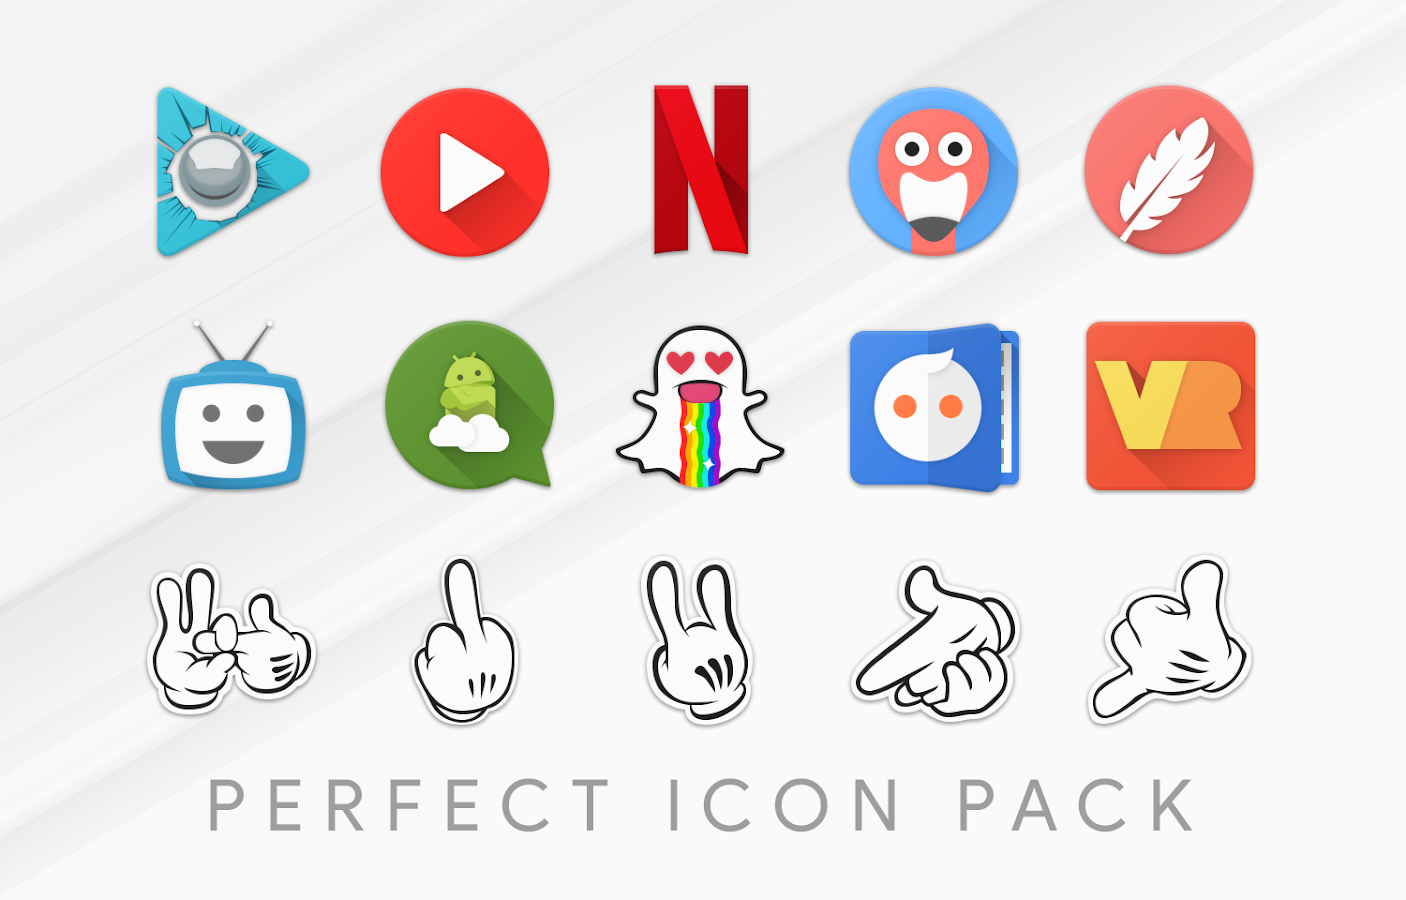 Perfect Icon Pack Screenshot 12